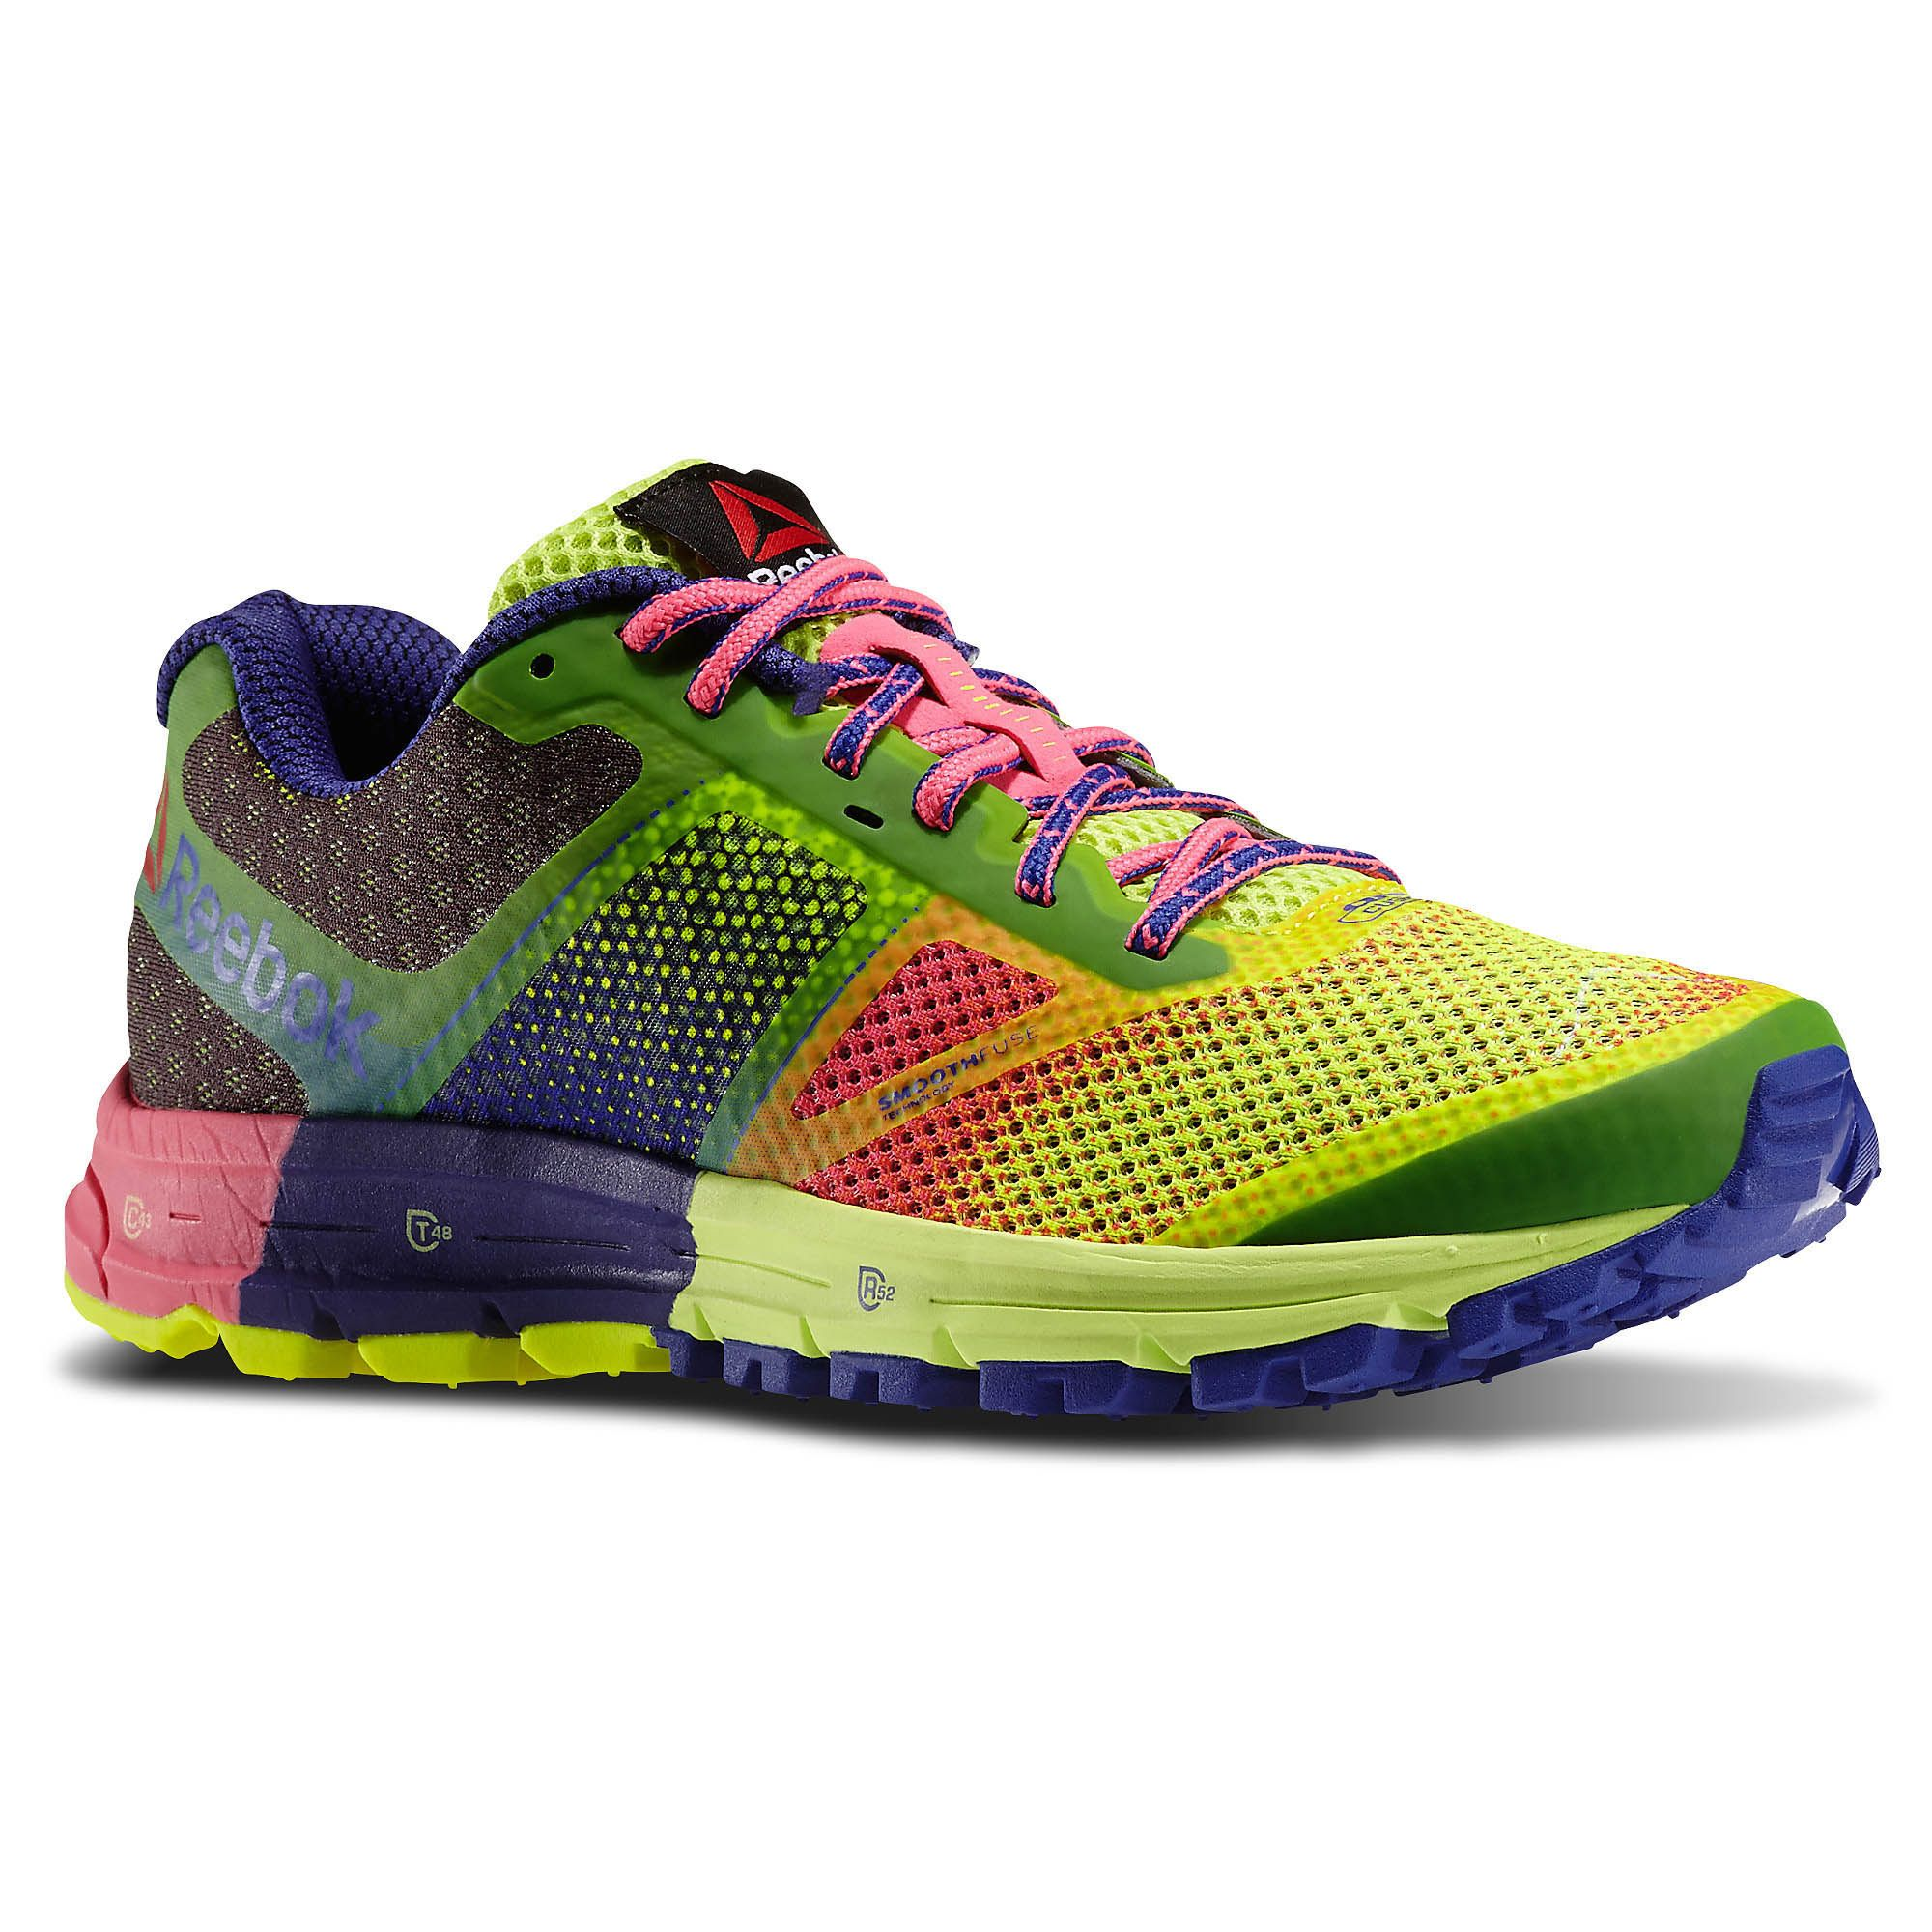 Reebok-running-shoes-and-sportsshoes-for-women (13)